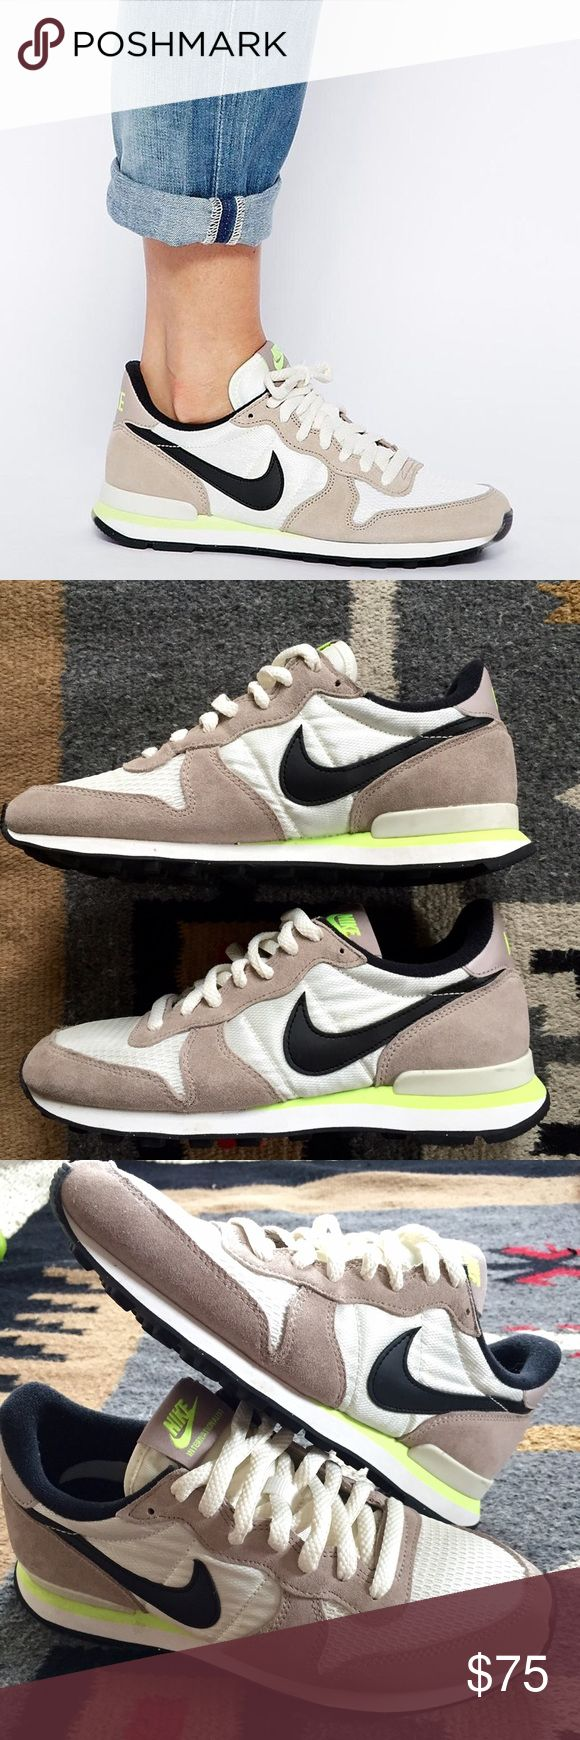 Nike Internationalist Taupe/ Neon Sneaker 7.5 Nike Internationalist White/ Black/ Taupe/ Neon Sneakers 7.5 | worn a few times, in almost perfect condition. Sold out everywhere, super cute color way! Can go lower on 🅿️al. Nike Shoes Sneakers